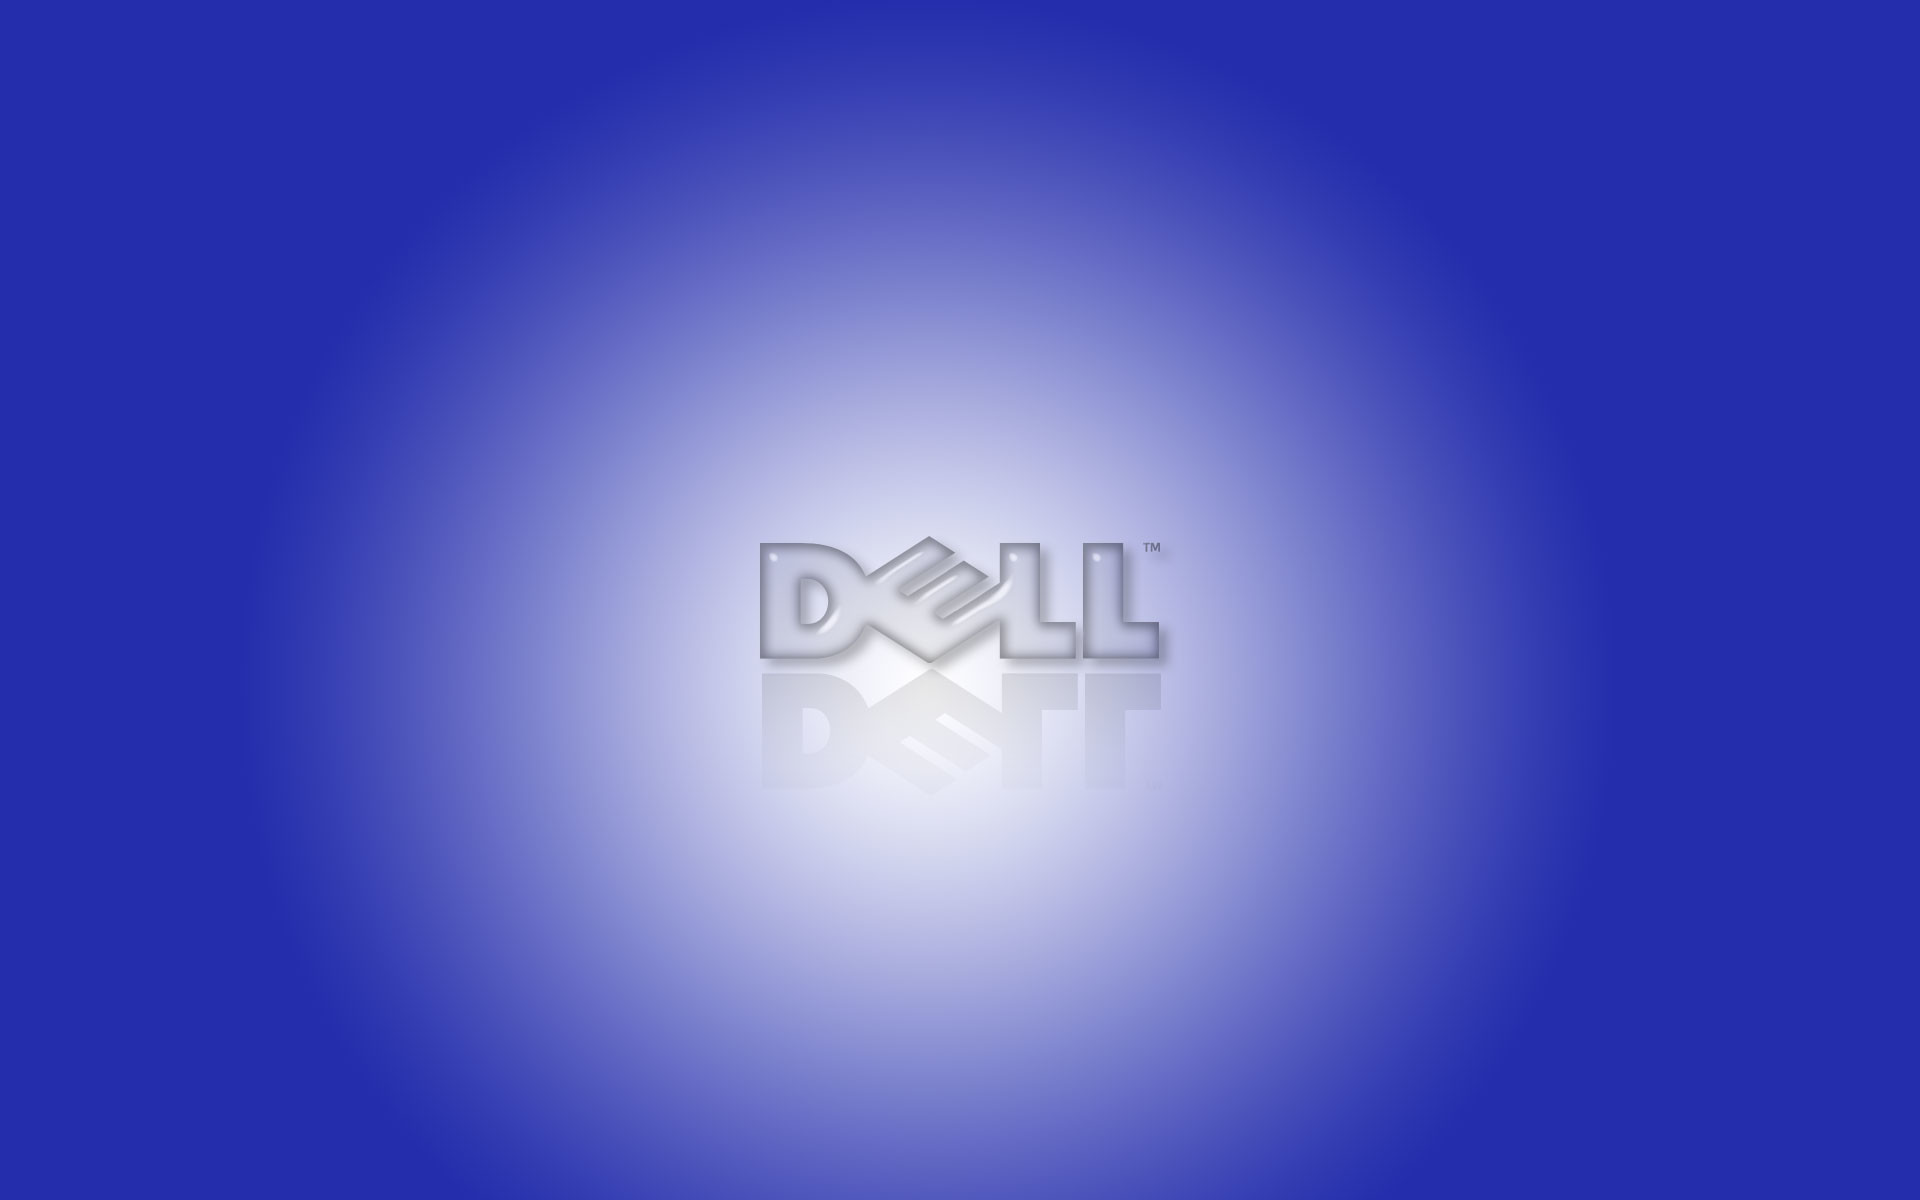 1920x1200 Images-Dell-Wallpapers-HD